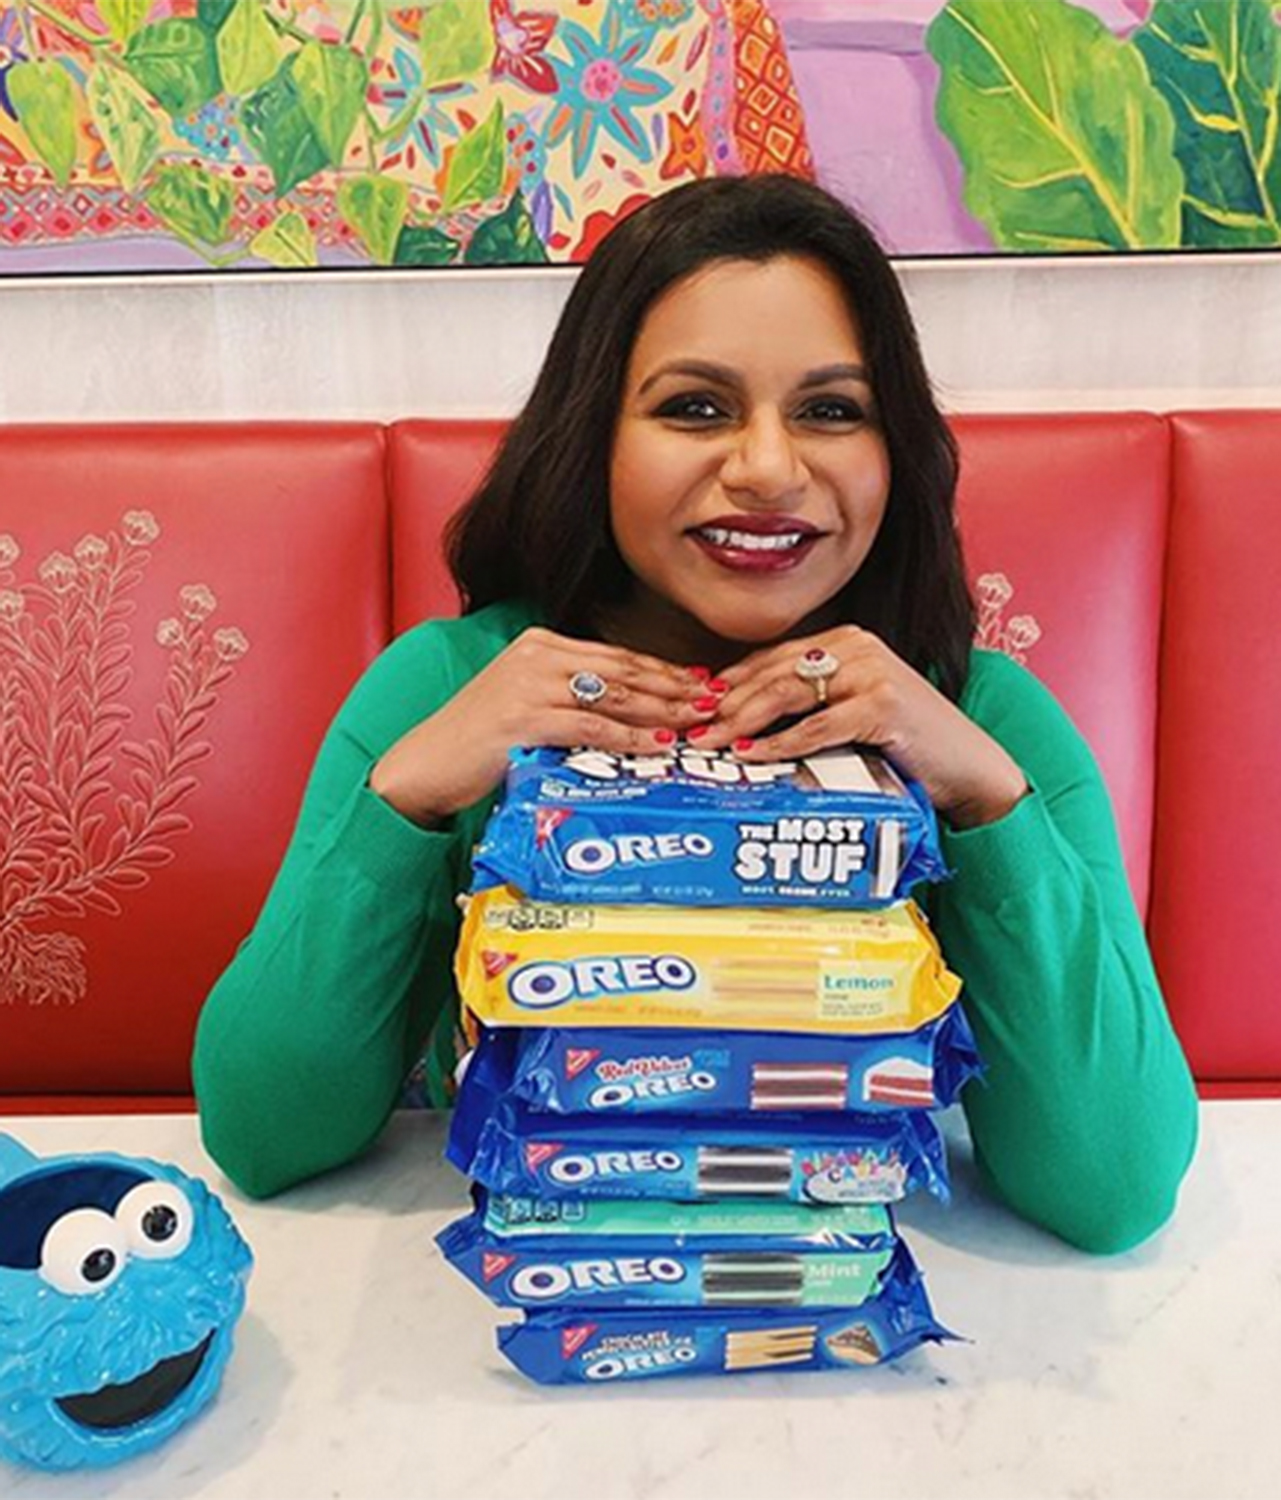 Mindy Kaling Tasted All of the Crazy Oreo Flavors and Picked a Clear Winner